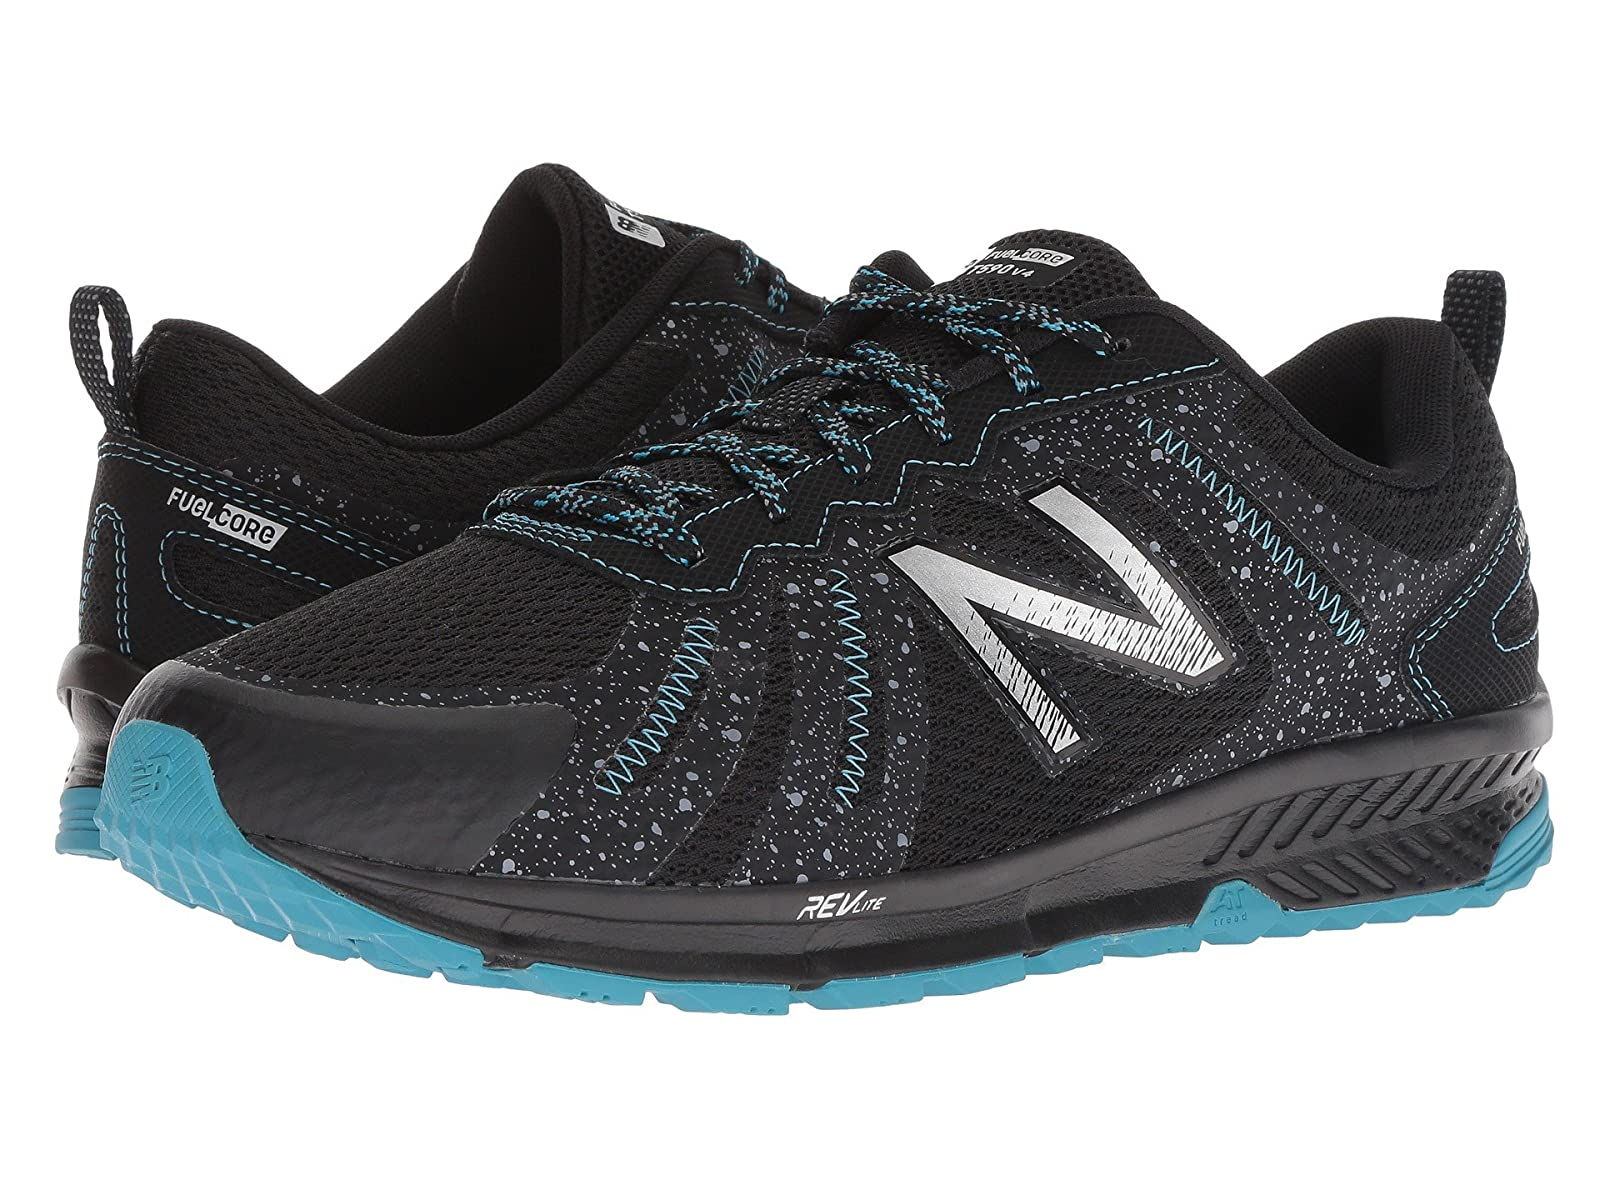 New Balance Trail 590v4Atmospheric grades have affordable shoes